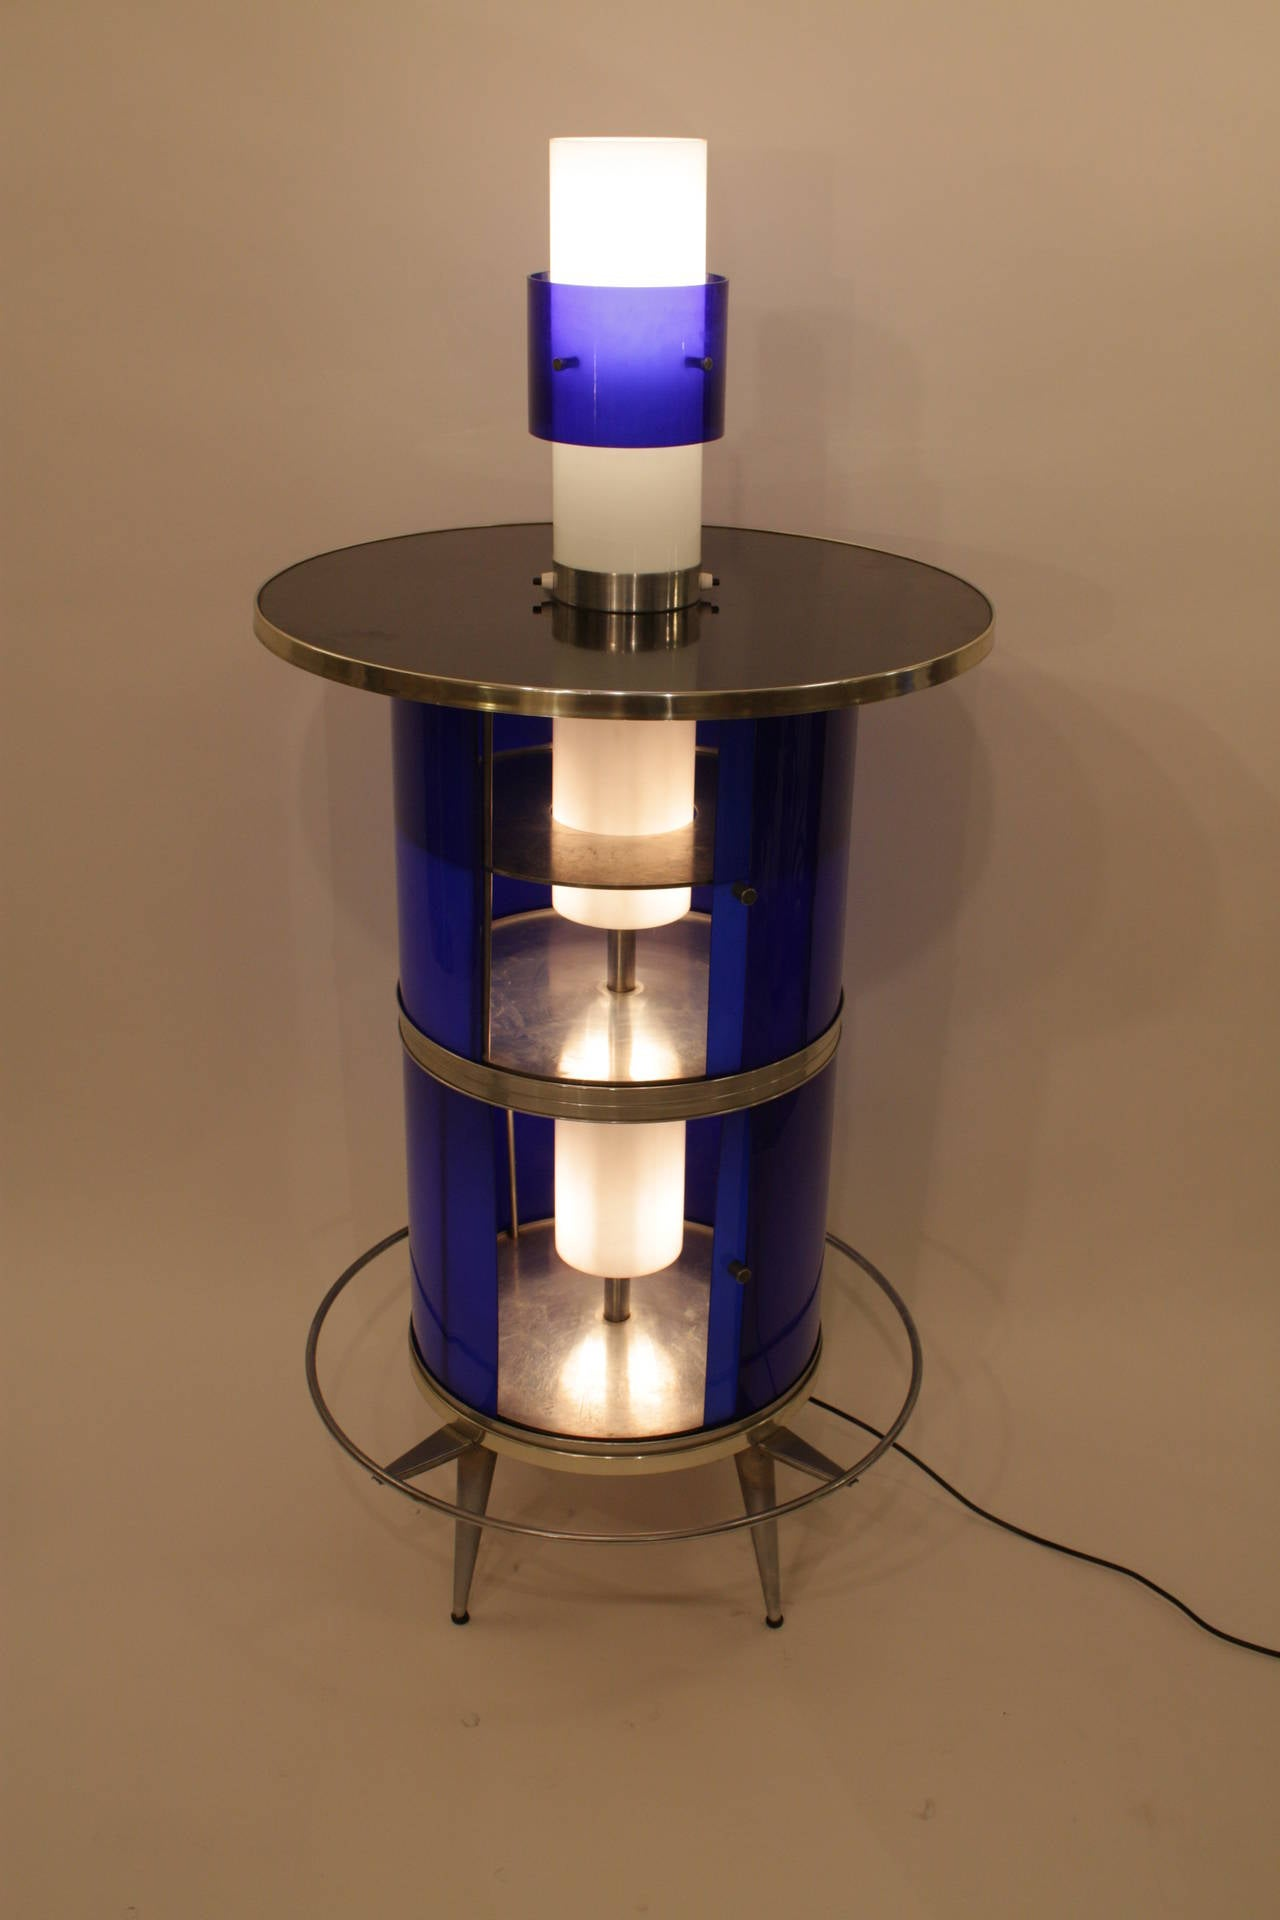 Spanish 1960s Space Age Blue and White Plexiglass Cocktails Bar with Table Lamp 4